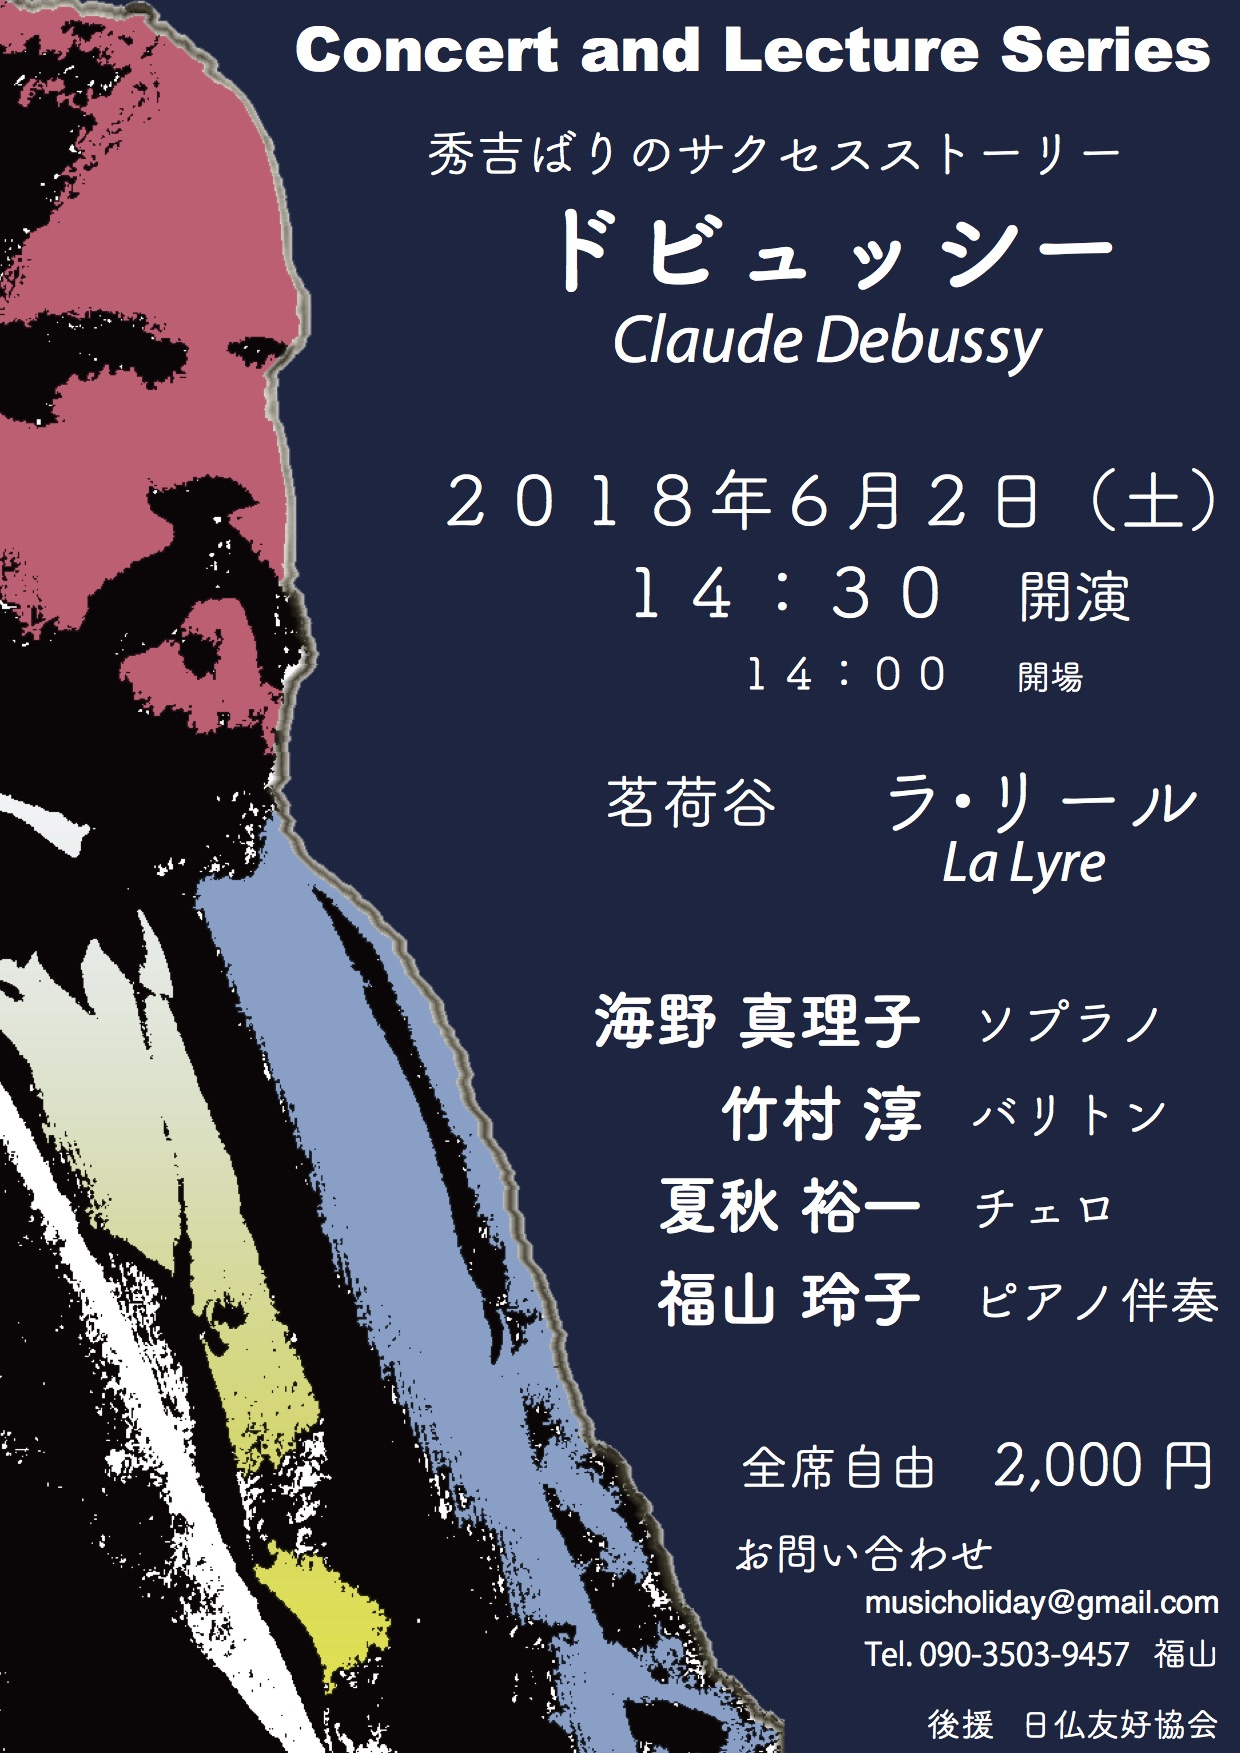 Concert and Lecture Series ドビュッシー